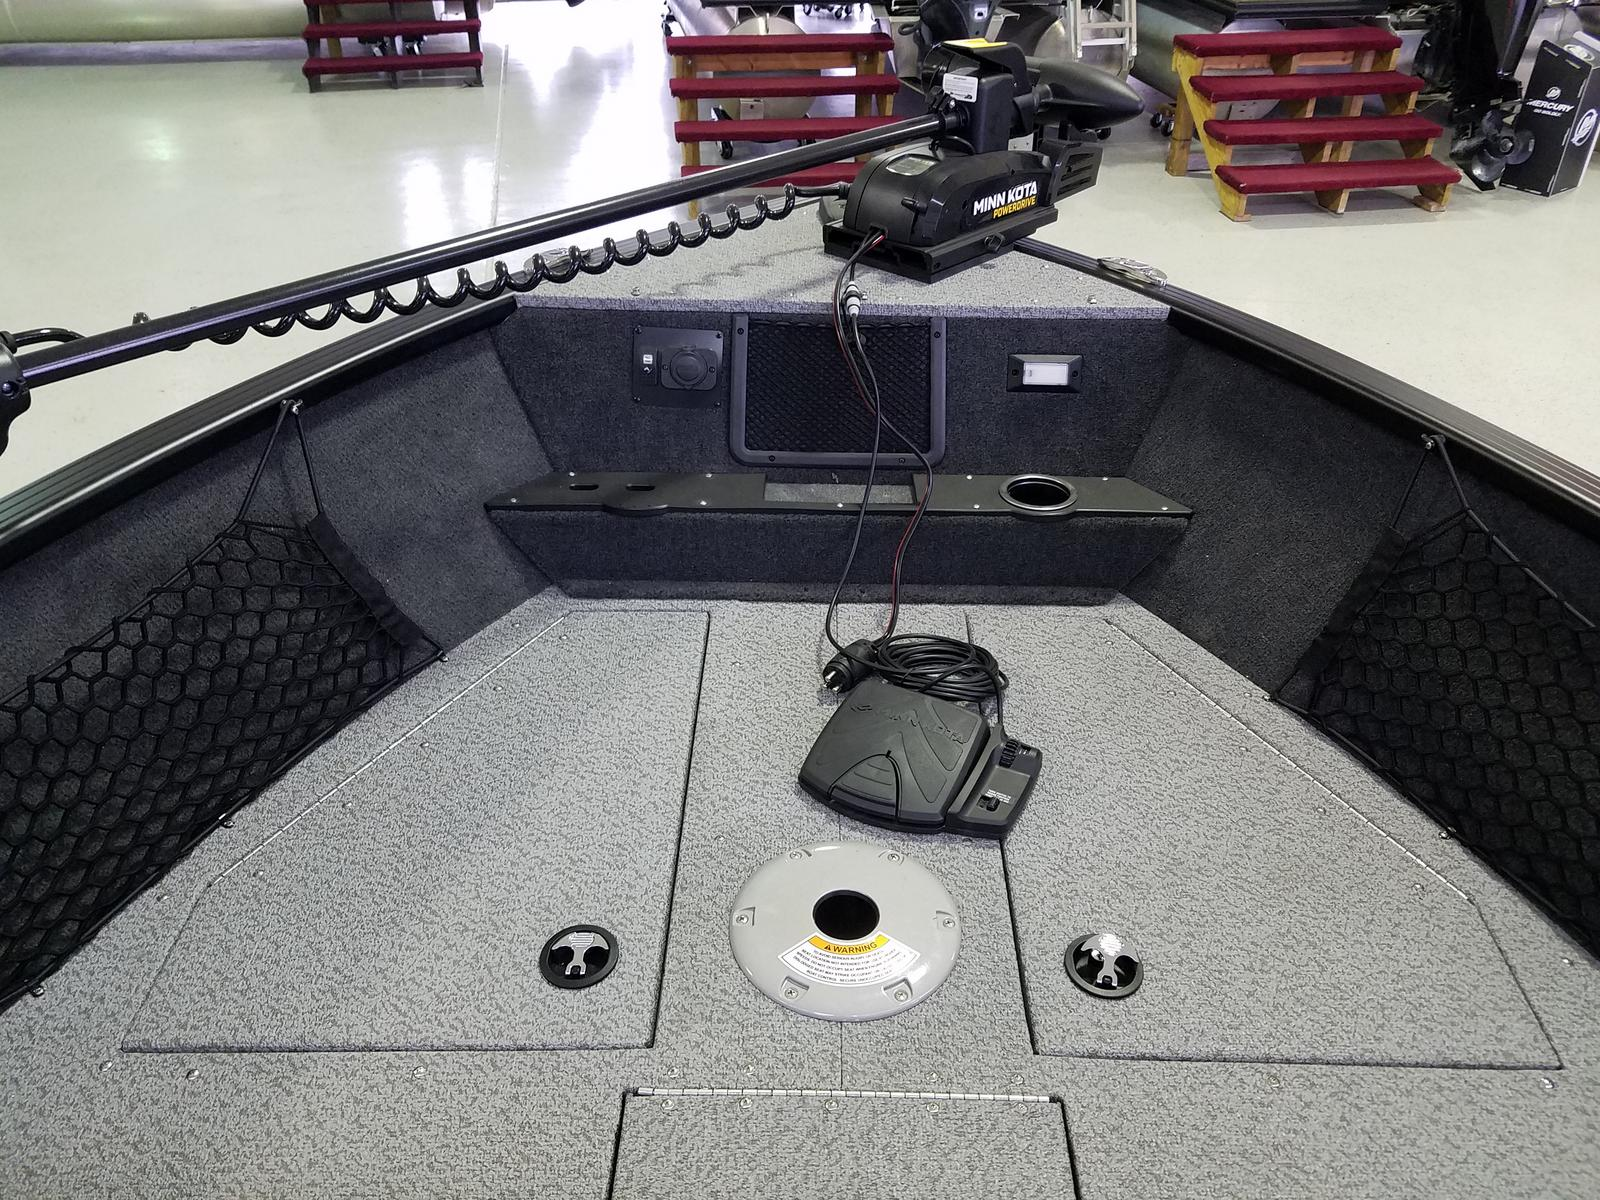 2021 Starweld boat for sale, model of the boat is Flex Pro 17 DC & Image # 4 of 7